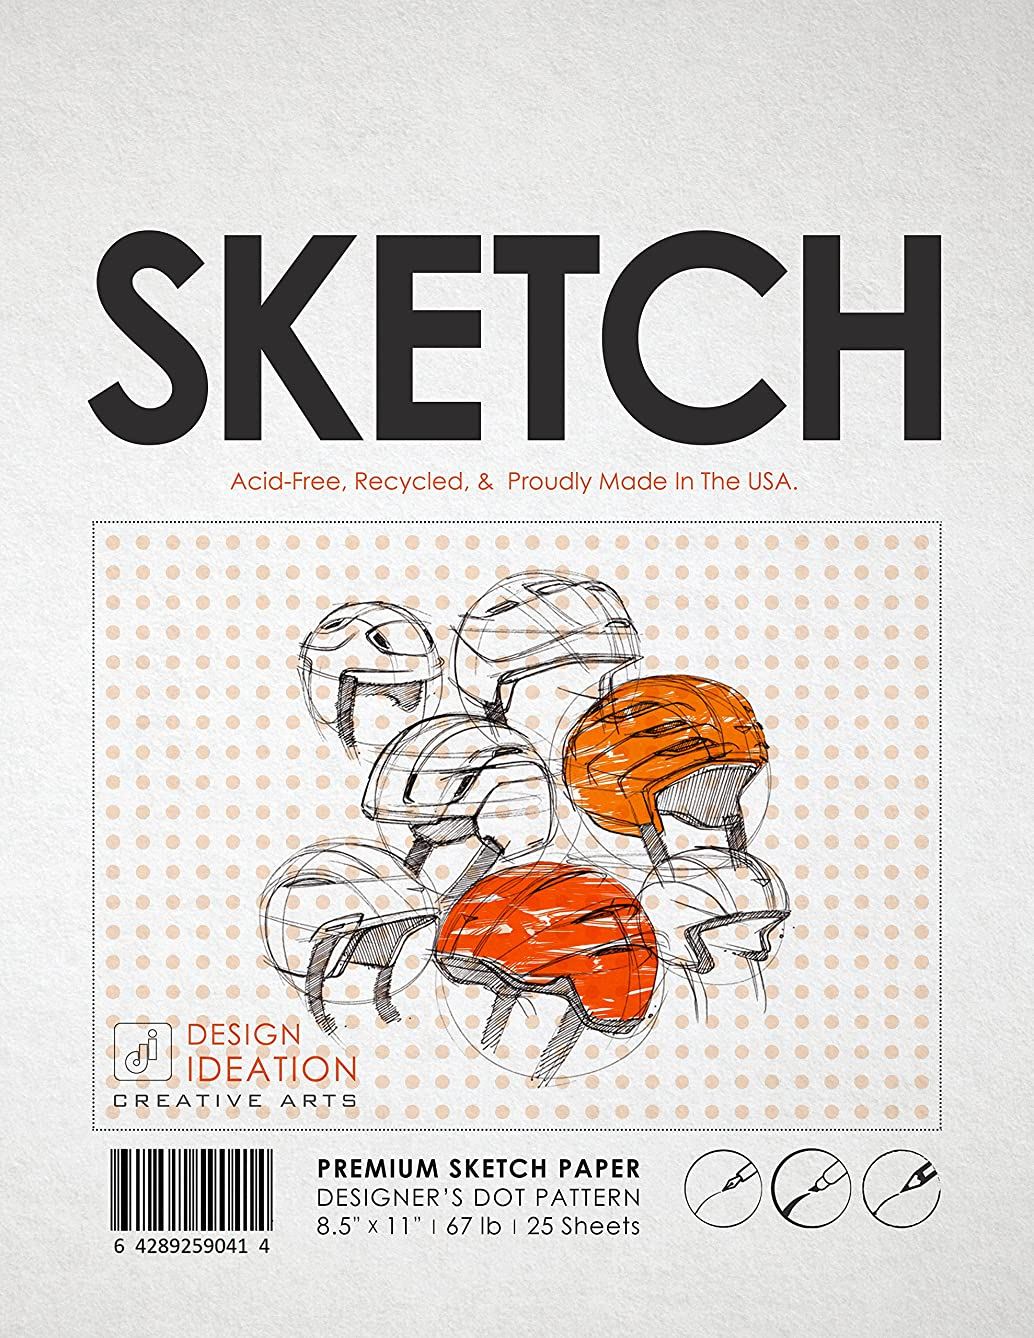 Premium Sketch Paper for Pencil, Ink, and Marker. Orange Designer's Dot Pattern Grid. Great for Art, Design and Education. (Jumbo 8.5